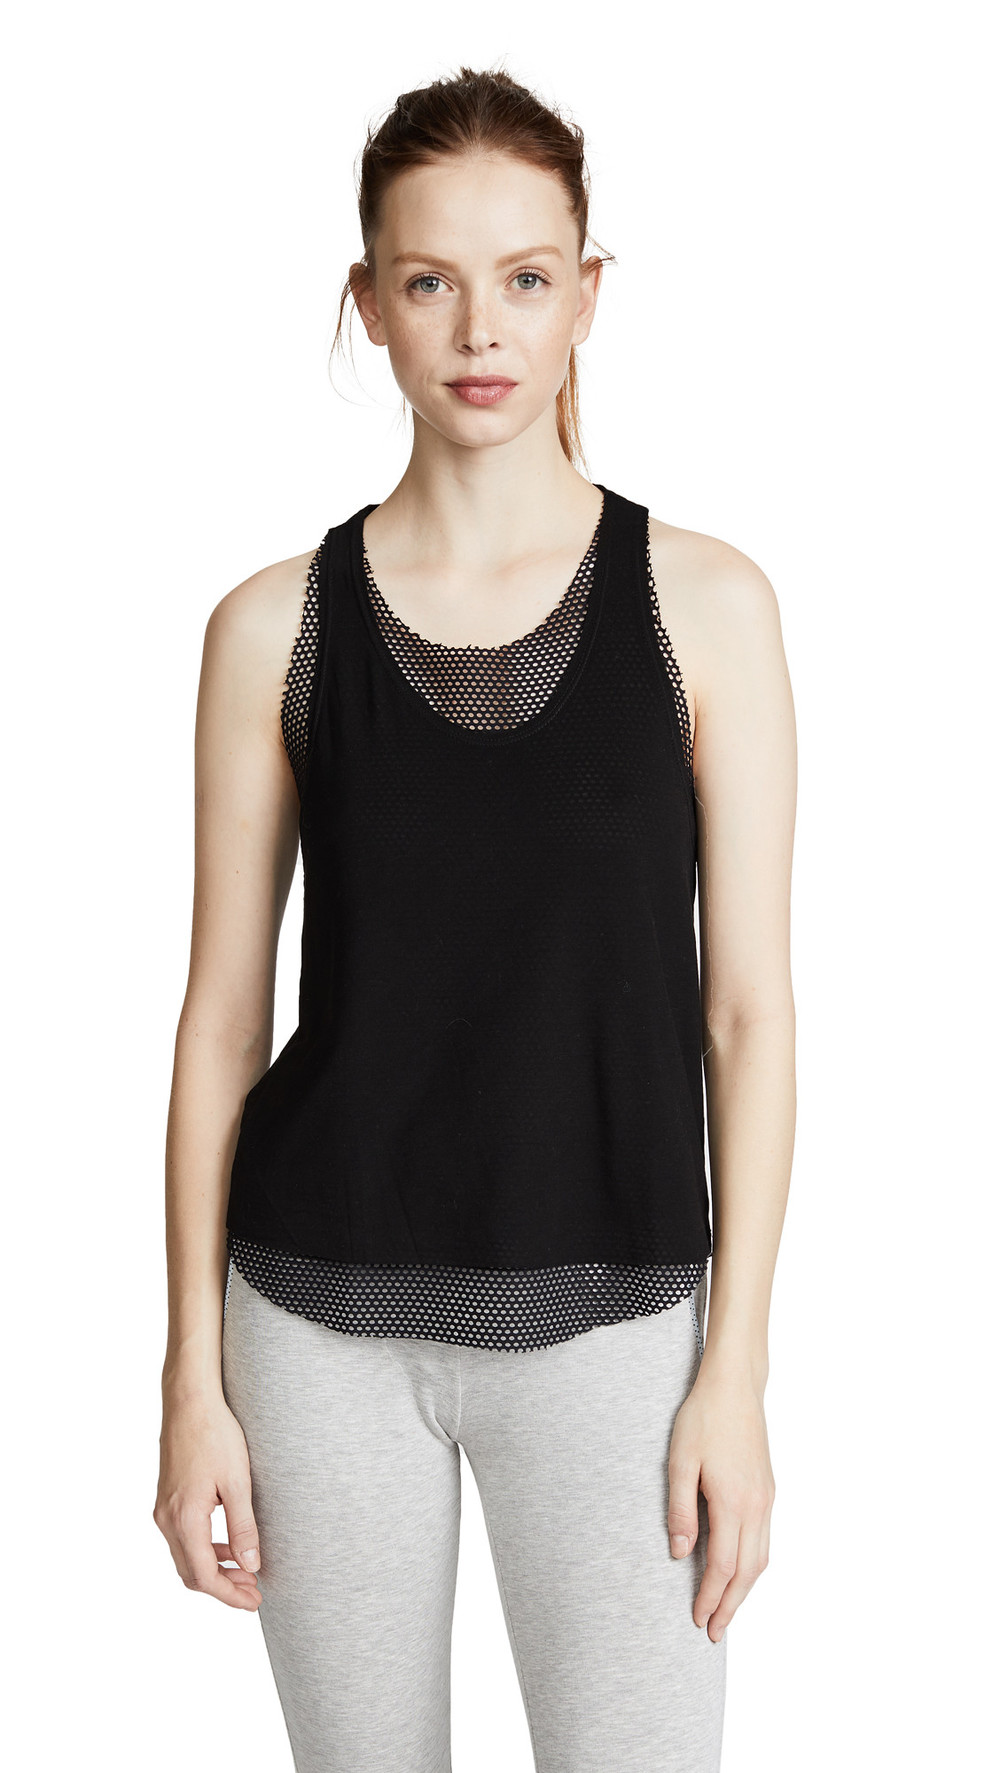 KORAL ACTIVEWEAR Villa Tank Top in black